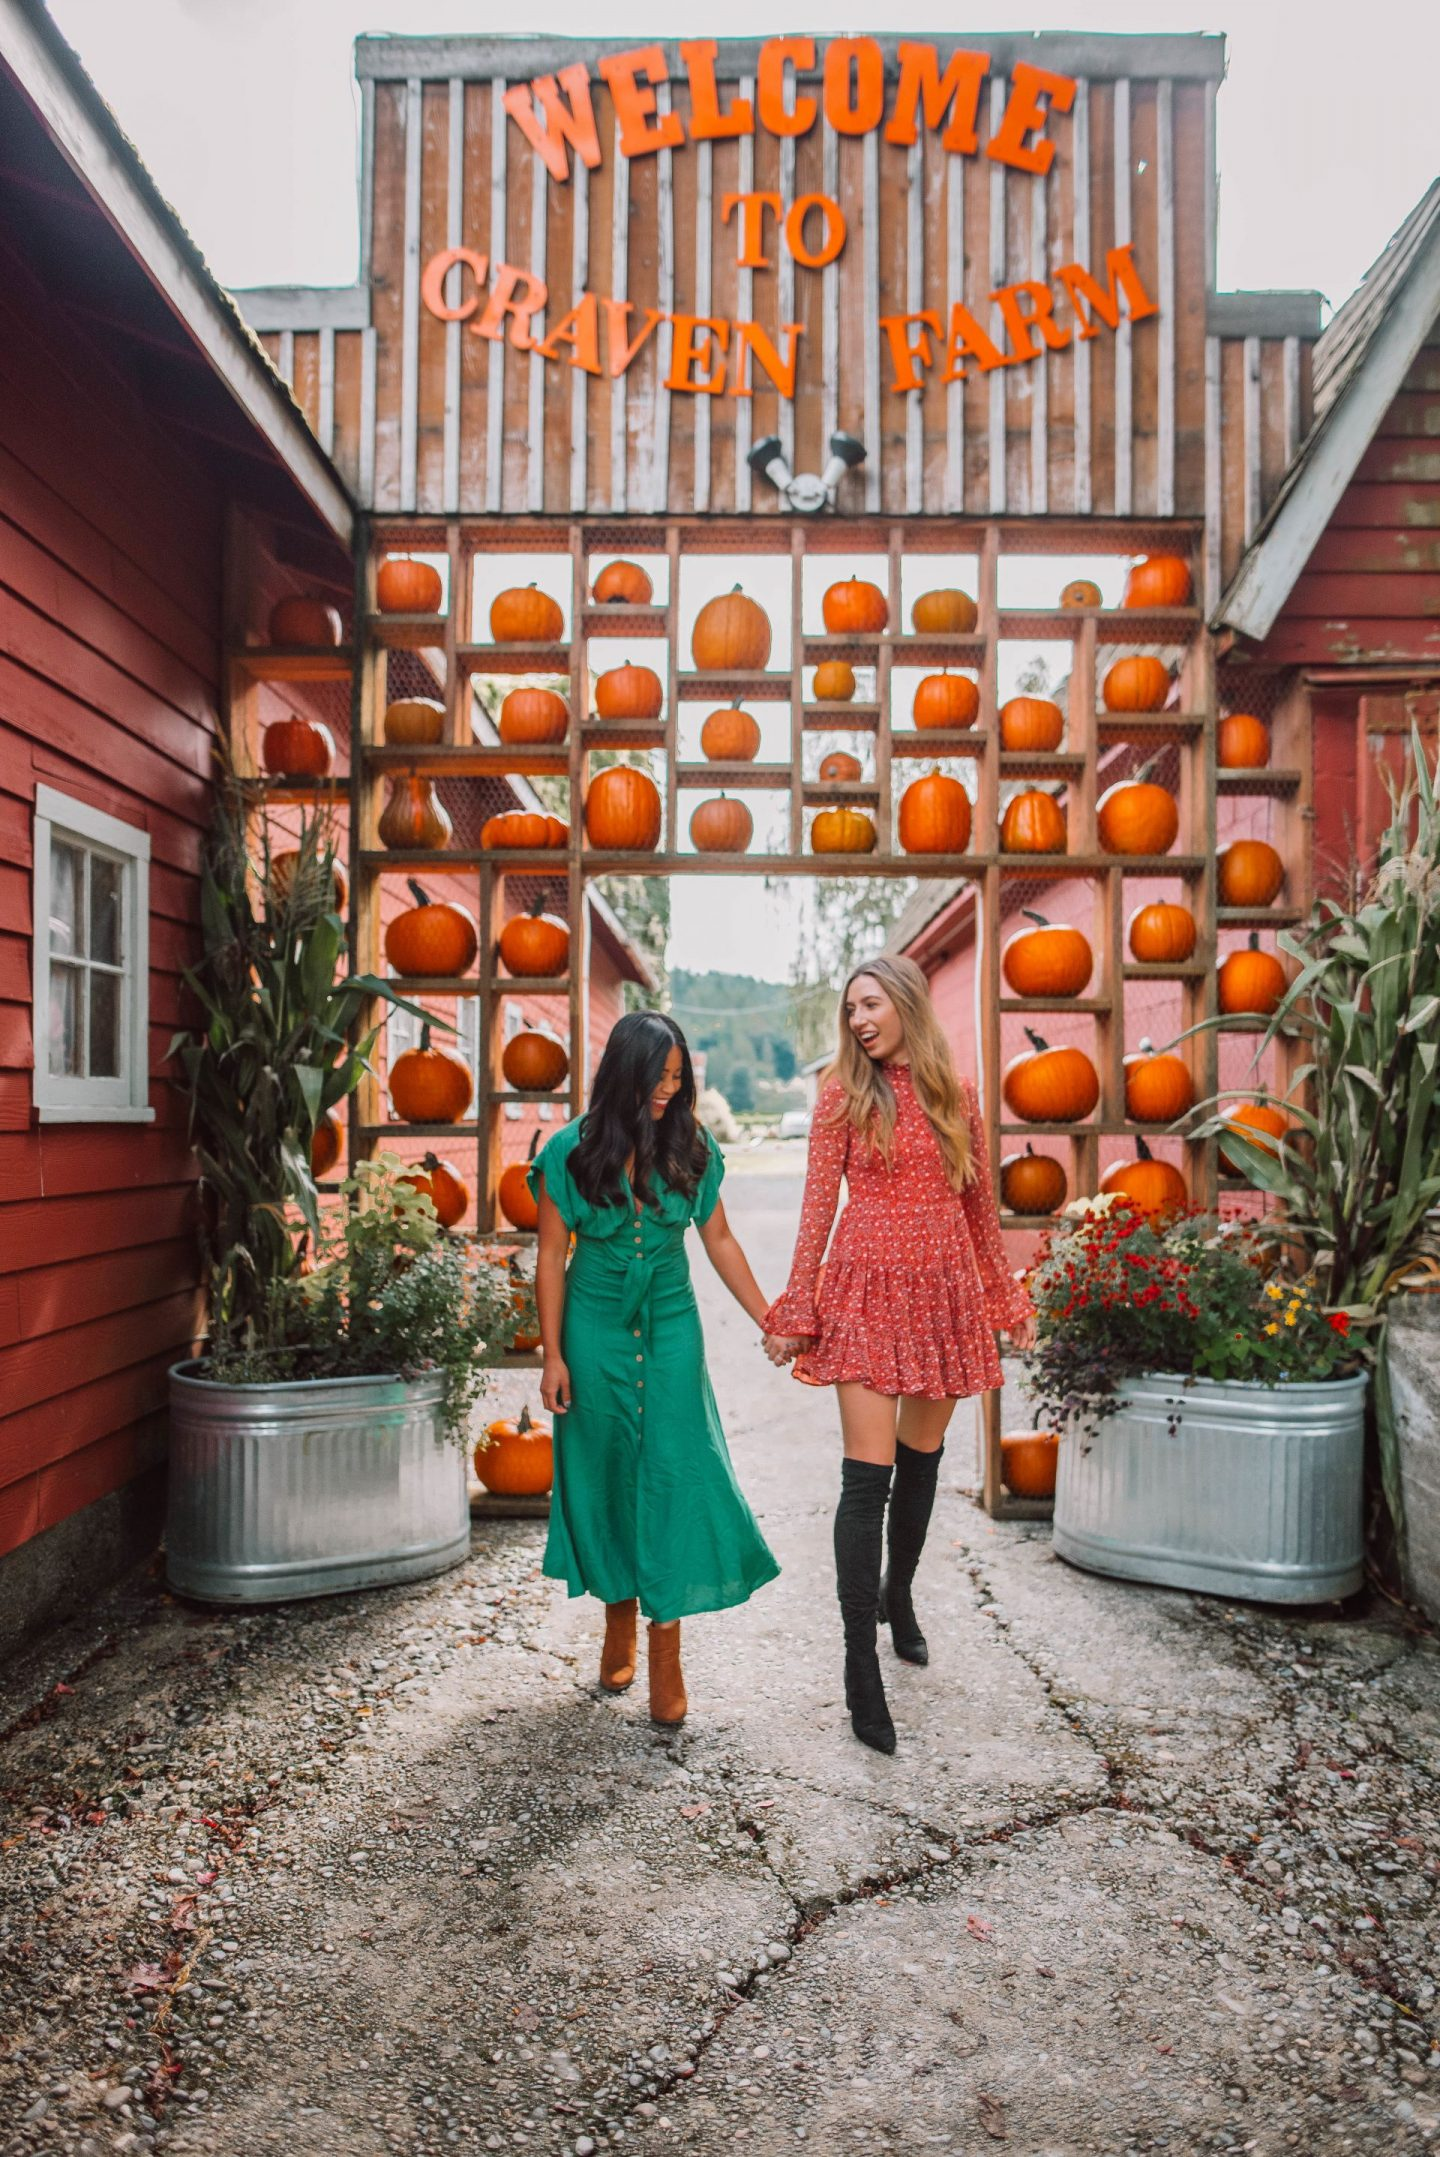 Craven Farms Pumpkin Patch - Snohomish, WA - image copyright @emmasedition - www.emmasedition.com